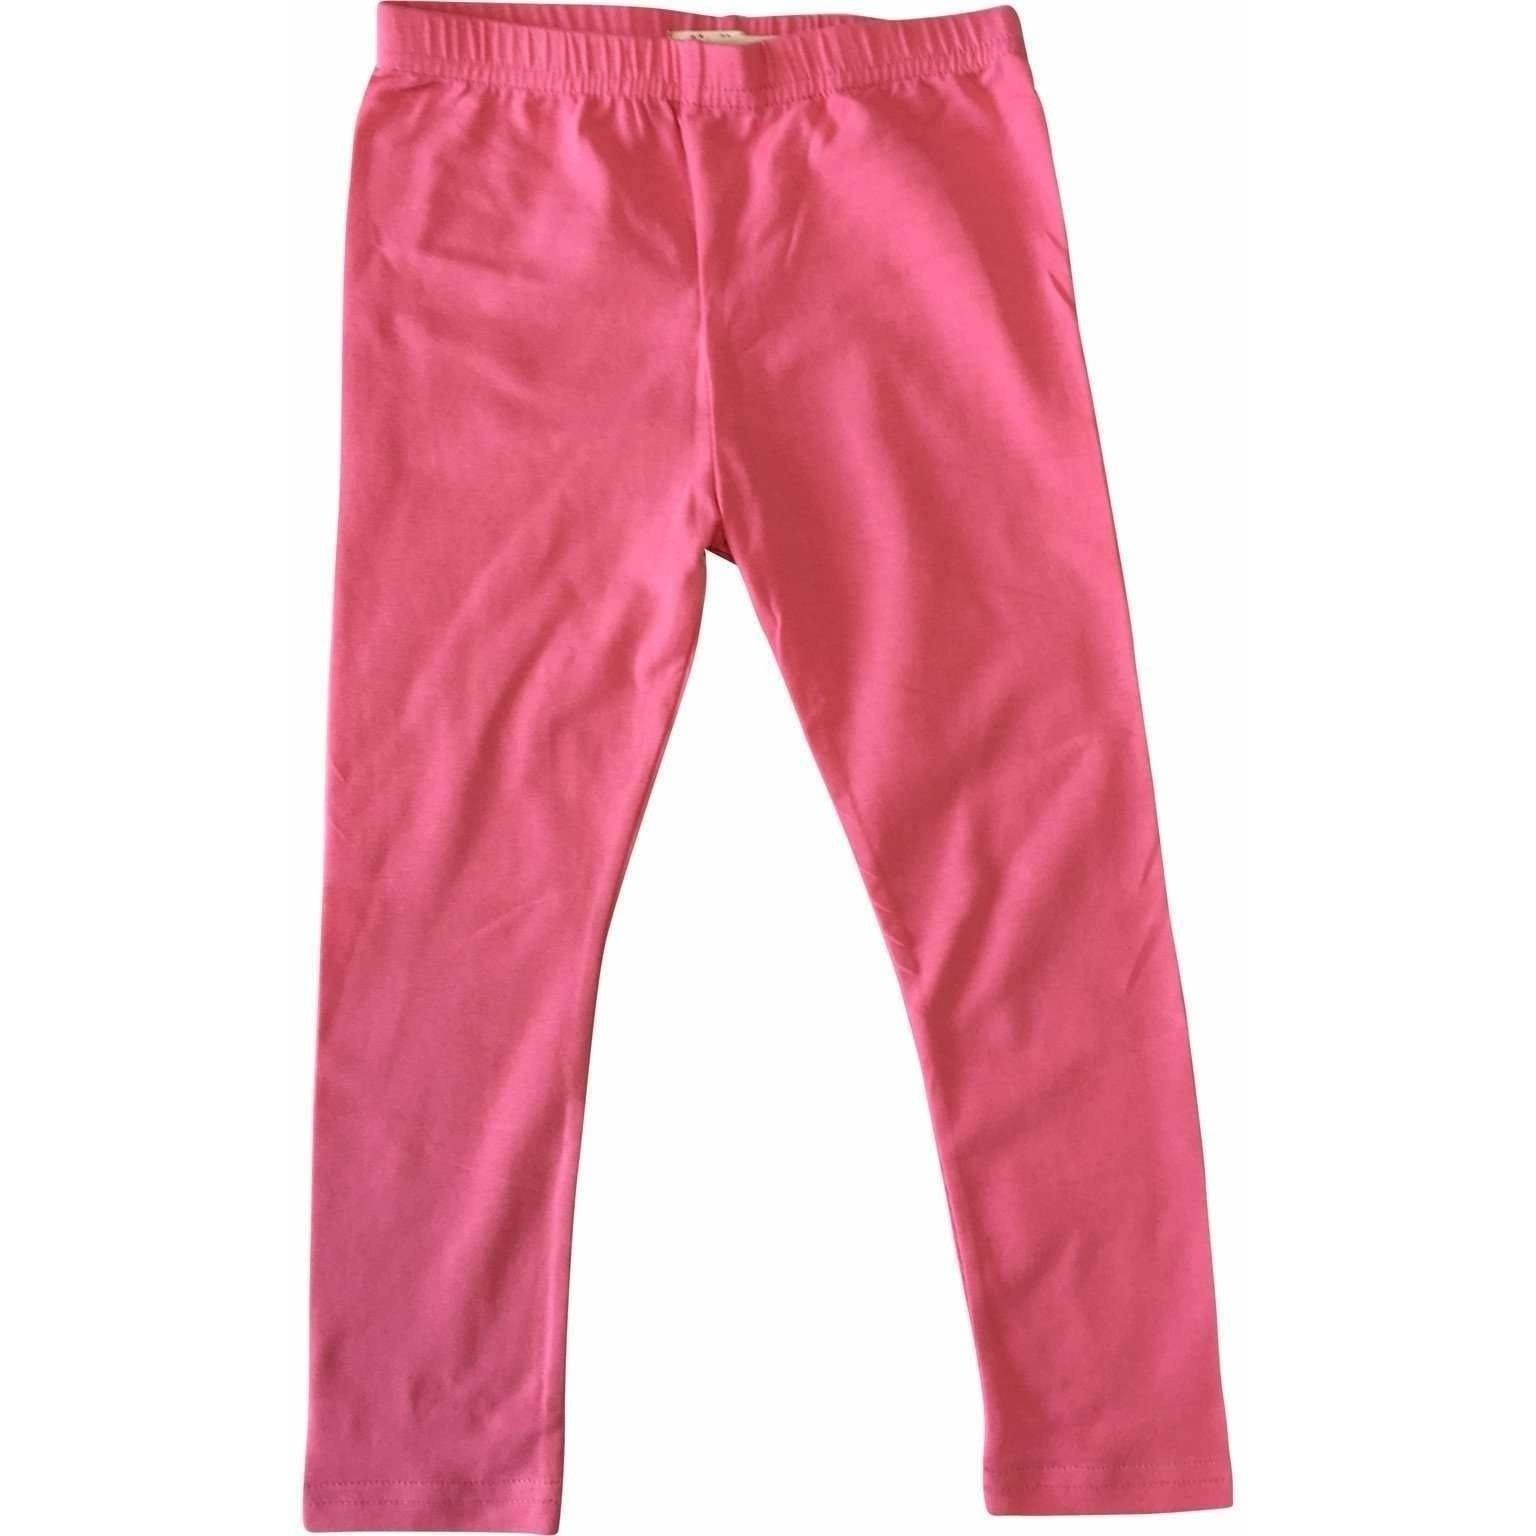 Adorable Essentials, Simple Pants size 6m & 2,Baby Bottoms,Adorable Essentials, LLC